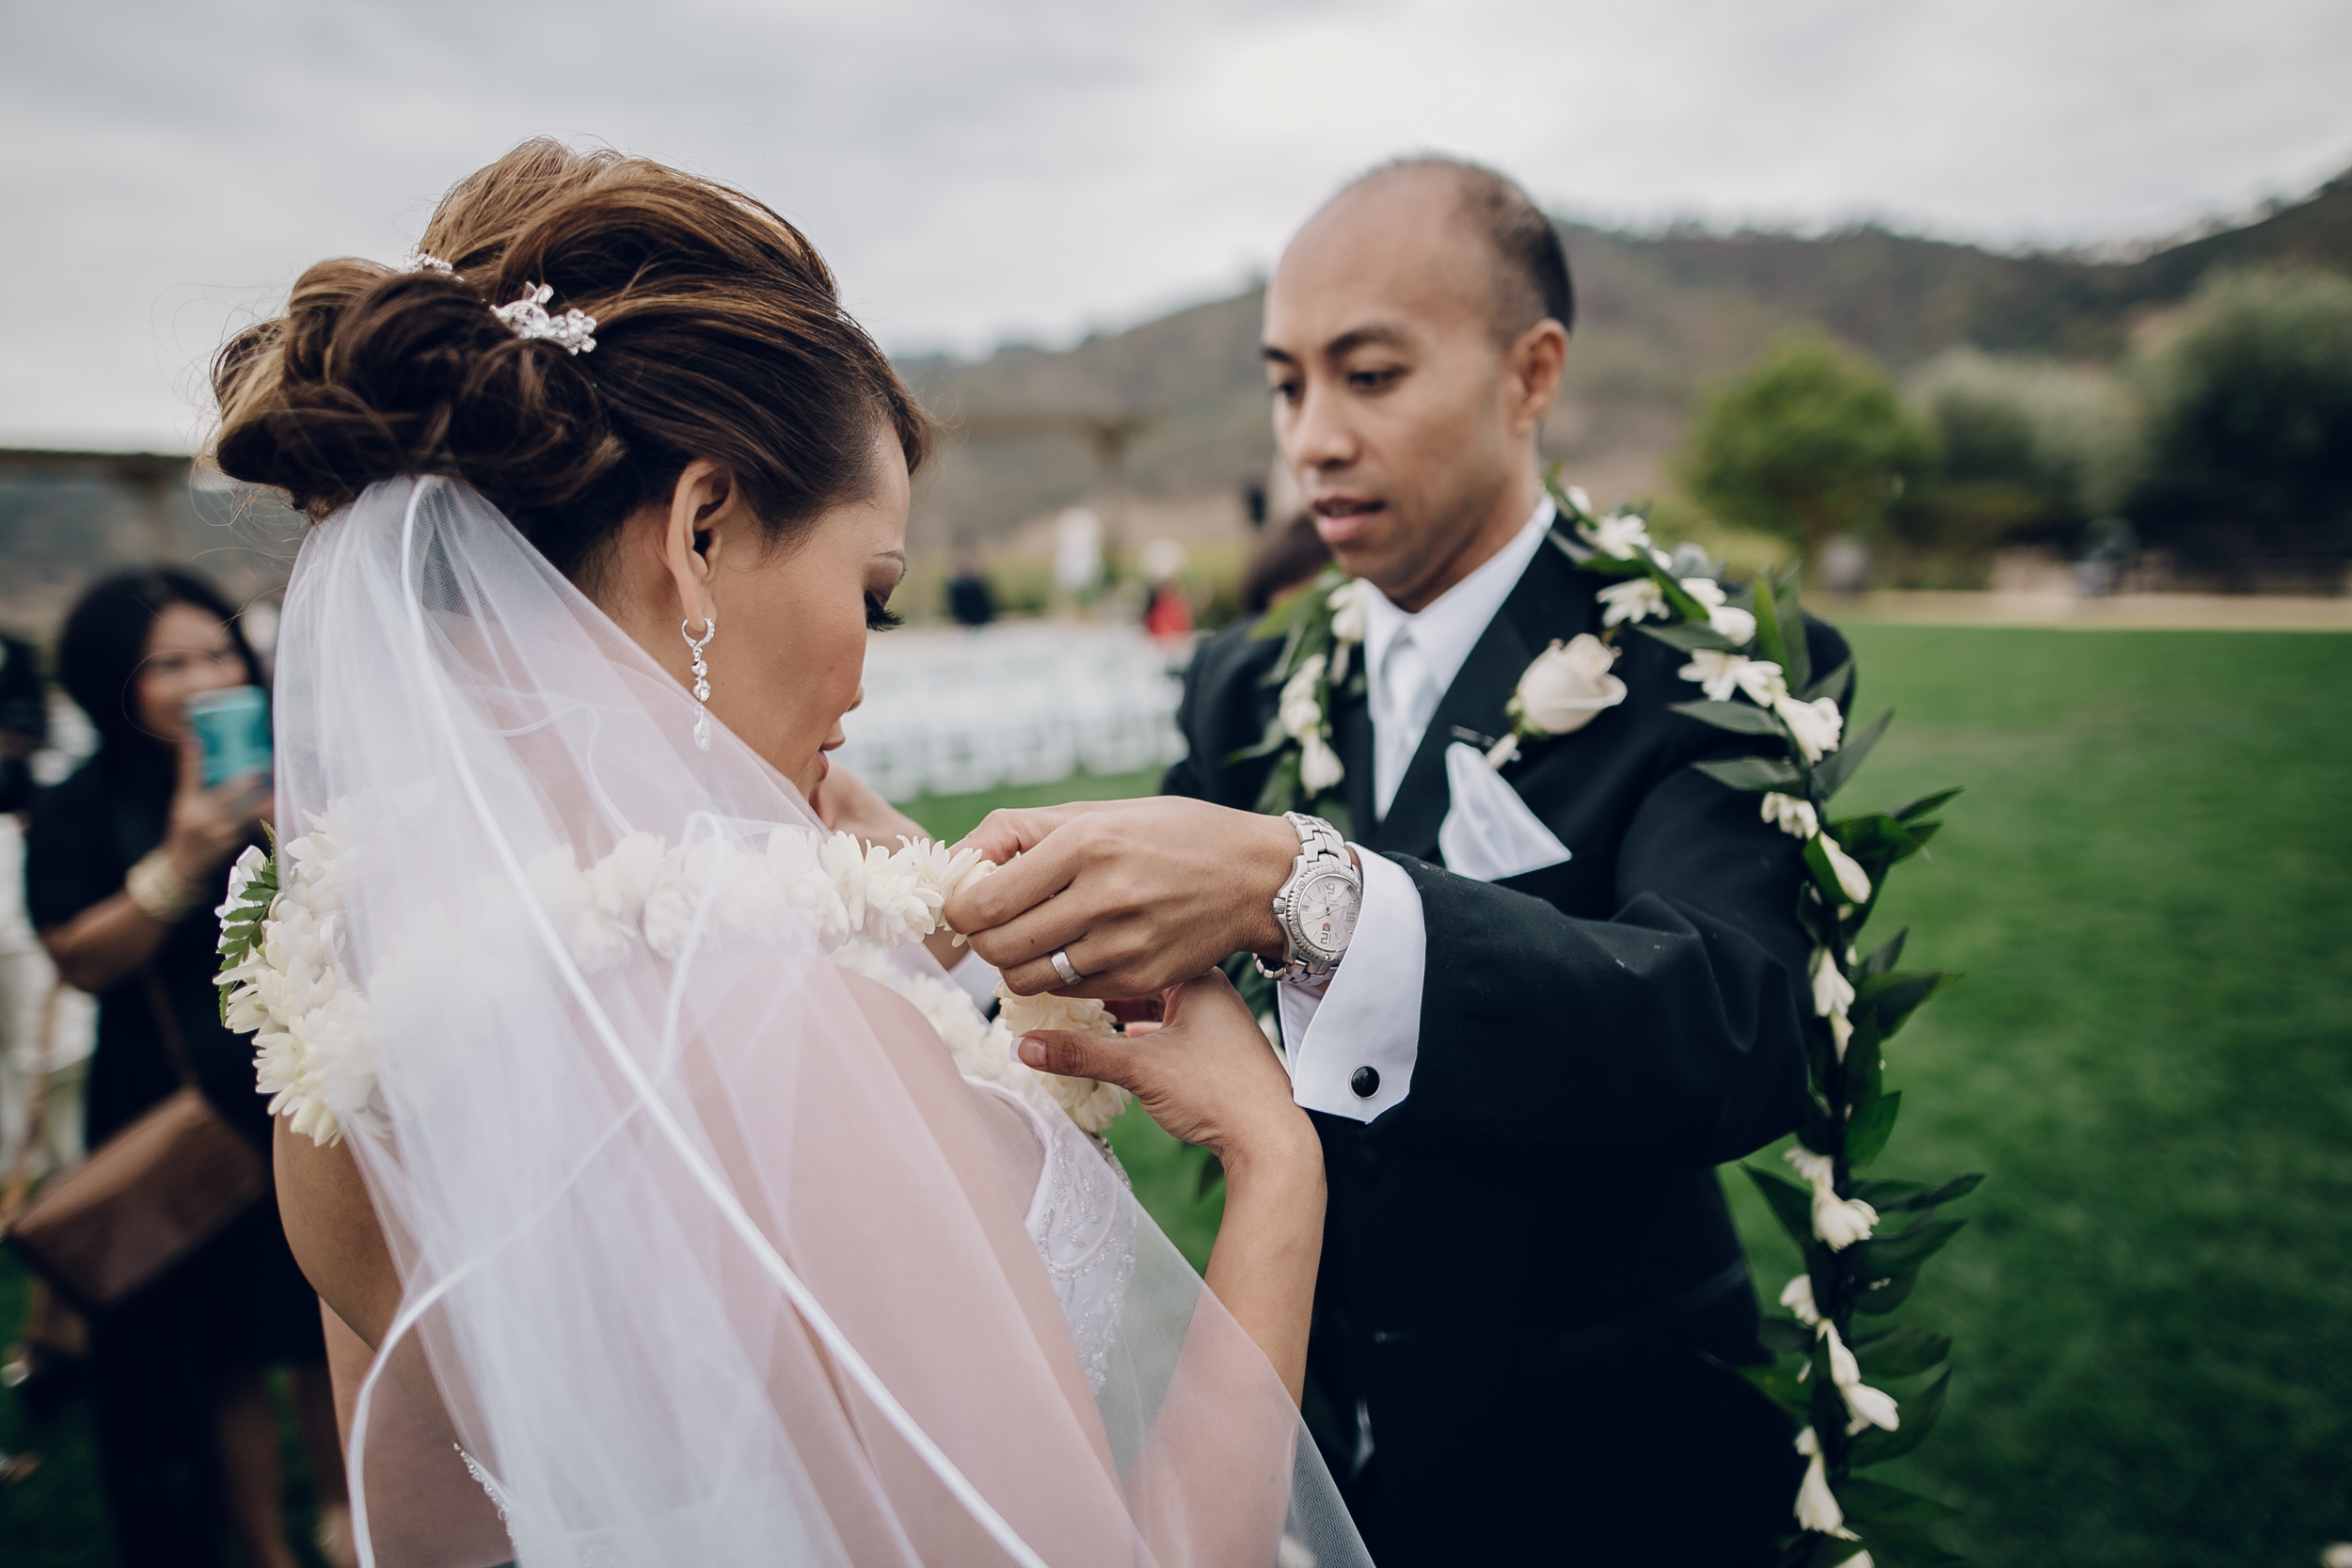 Shiela + Lester's Wedding 9-30-15 729.jpg